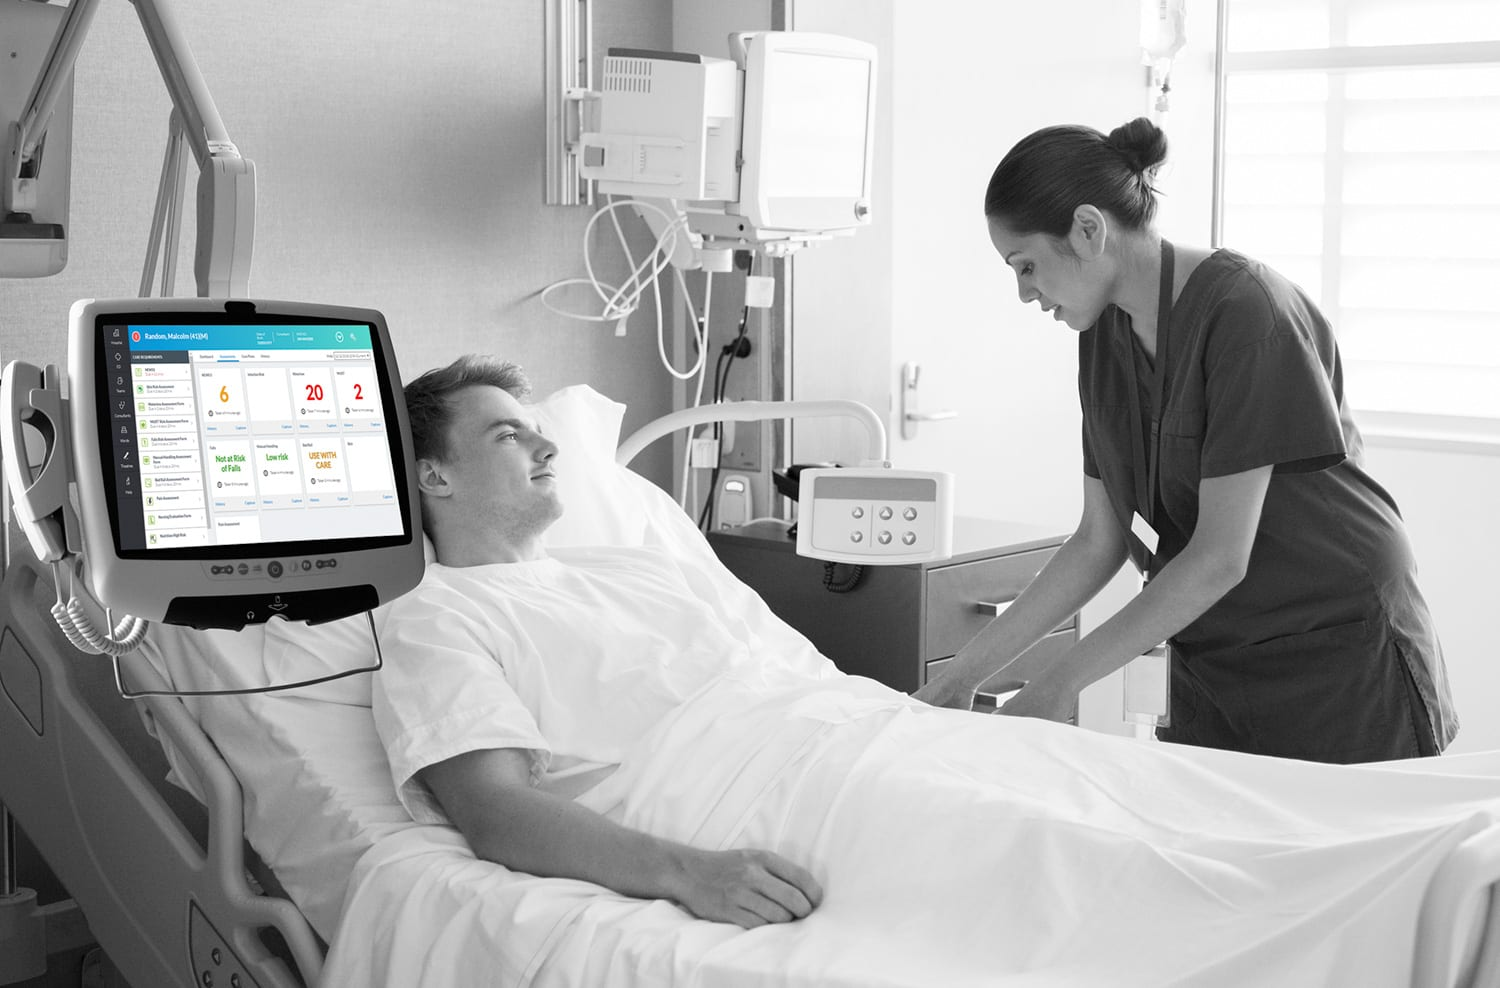 Digital transformation at the point of care - helping patients, frontline staff and NHS Trusts